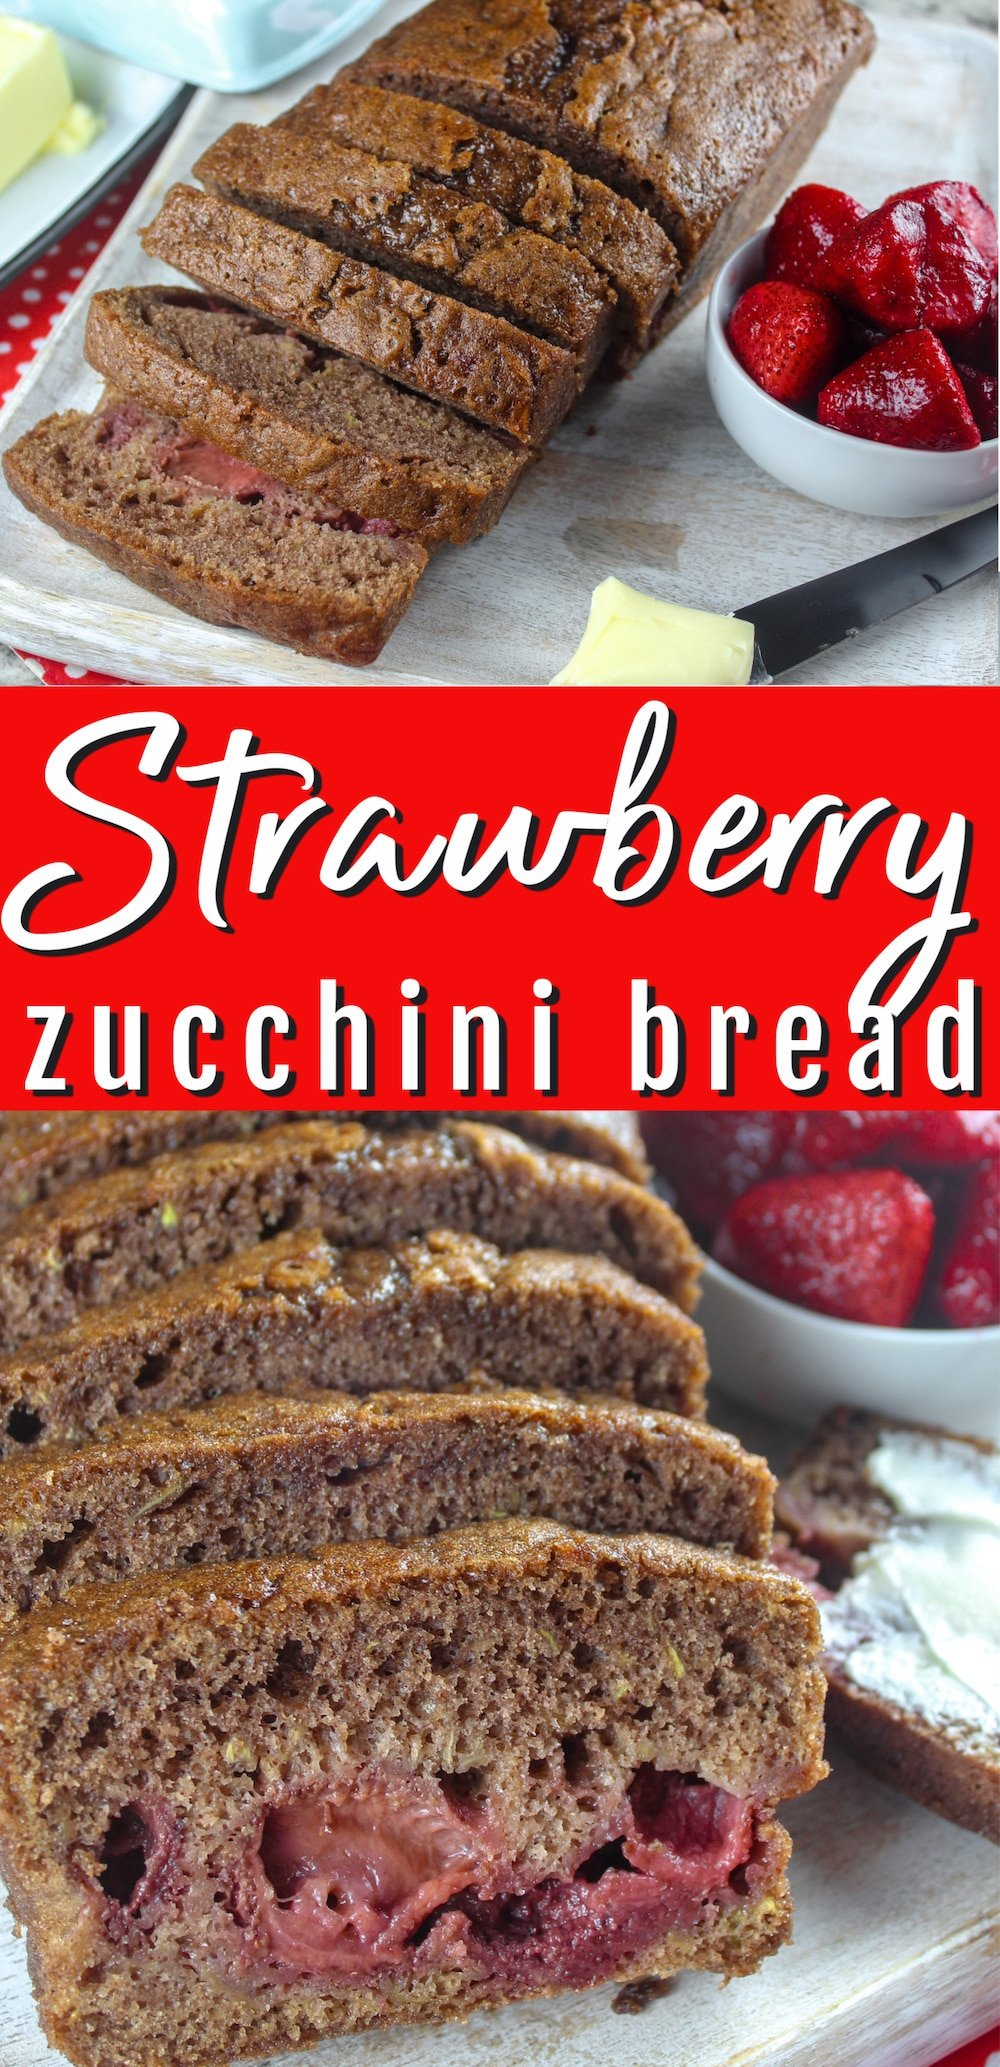 Earlier this year, I discovered the wonders of Zucchini Bread! I liked it so much I wanted to make it again - but this time I jazzed it up with Strawberries from a local grower. But whether you have fresh or frozen - strawberry zucchini bread will definitely be a favorite in your house! via @foodhussy